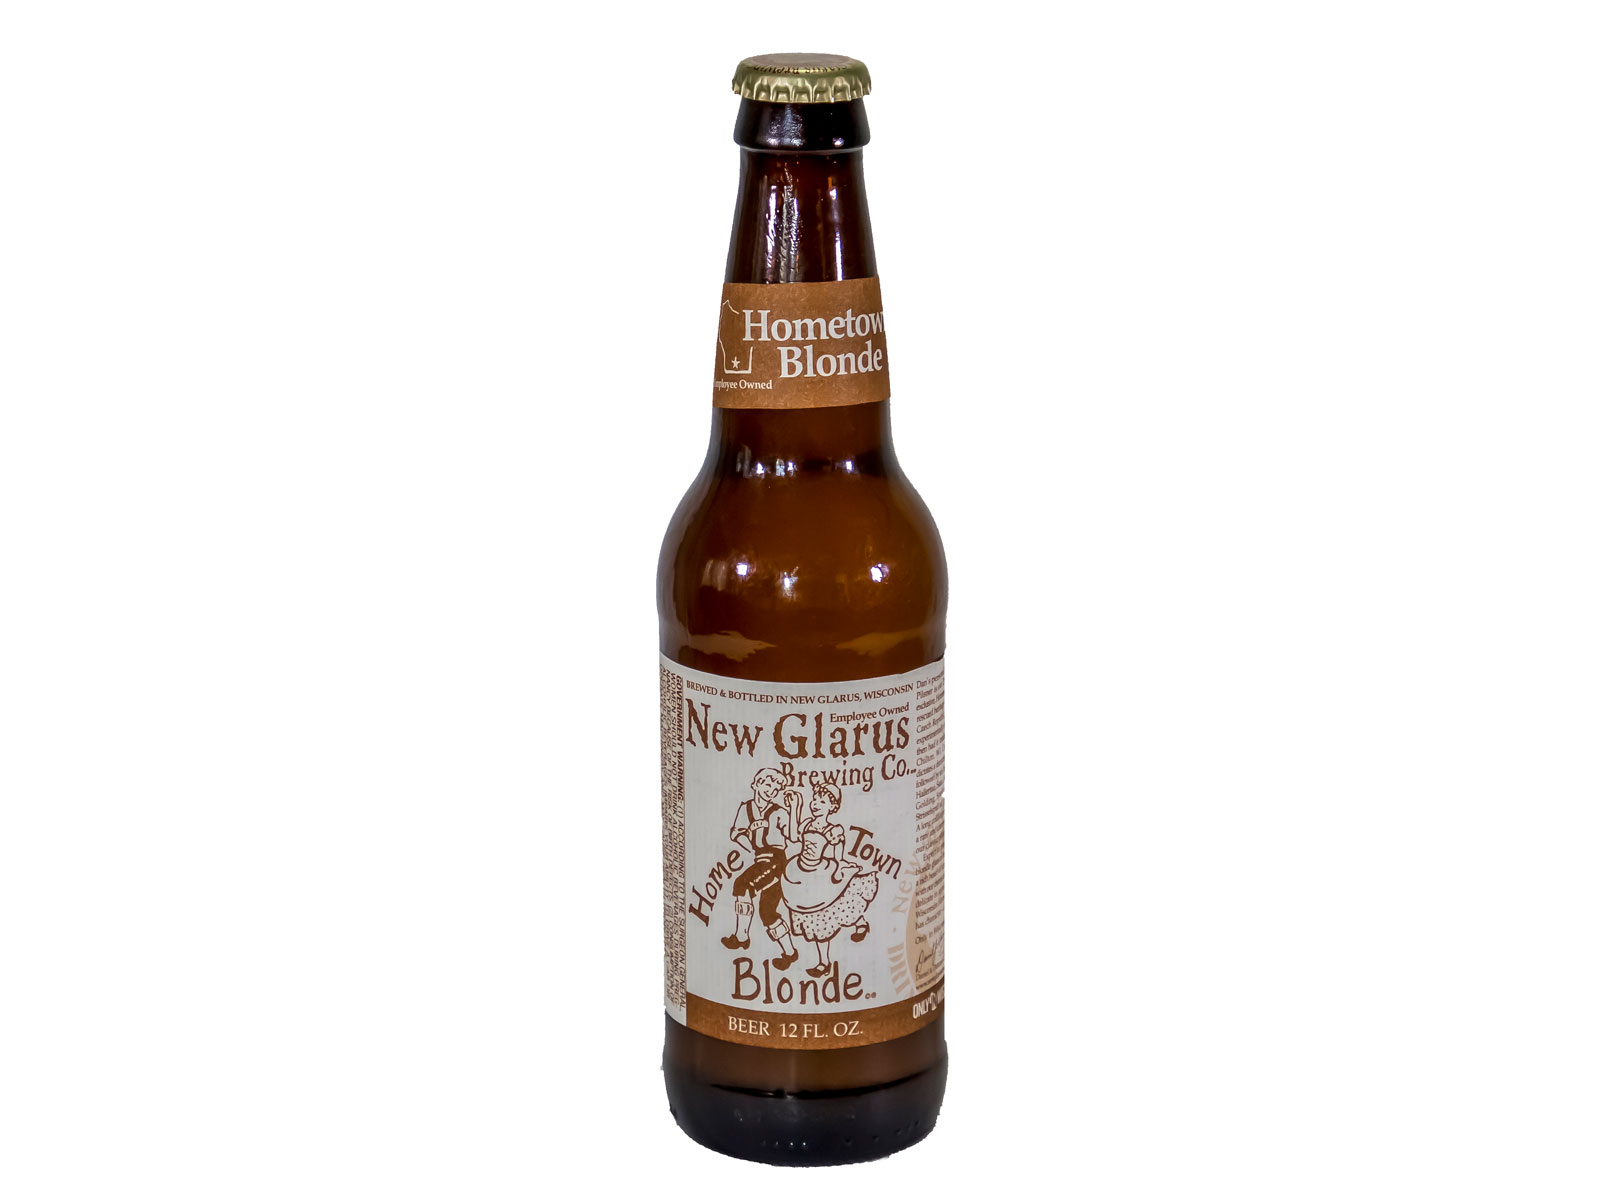 Hometown Blonde by New Glarus Brewing Company